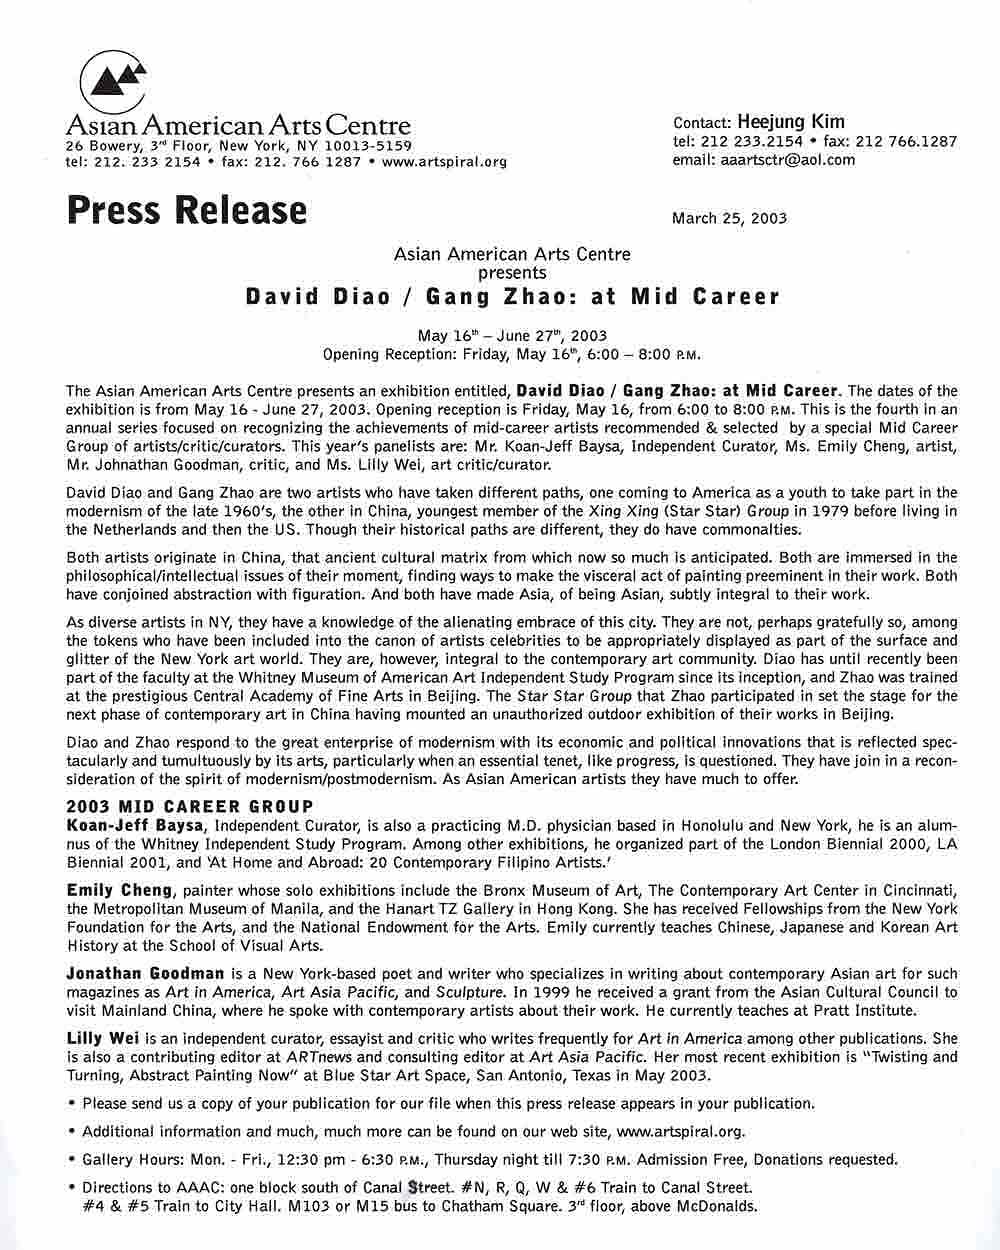 David Diao/Gang Zhao: at Mid Career, press release